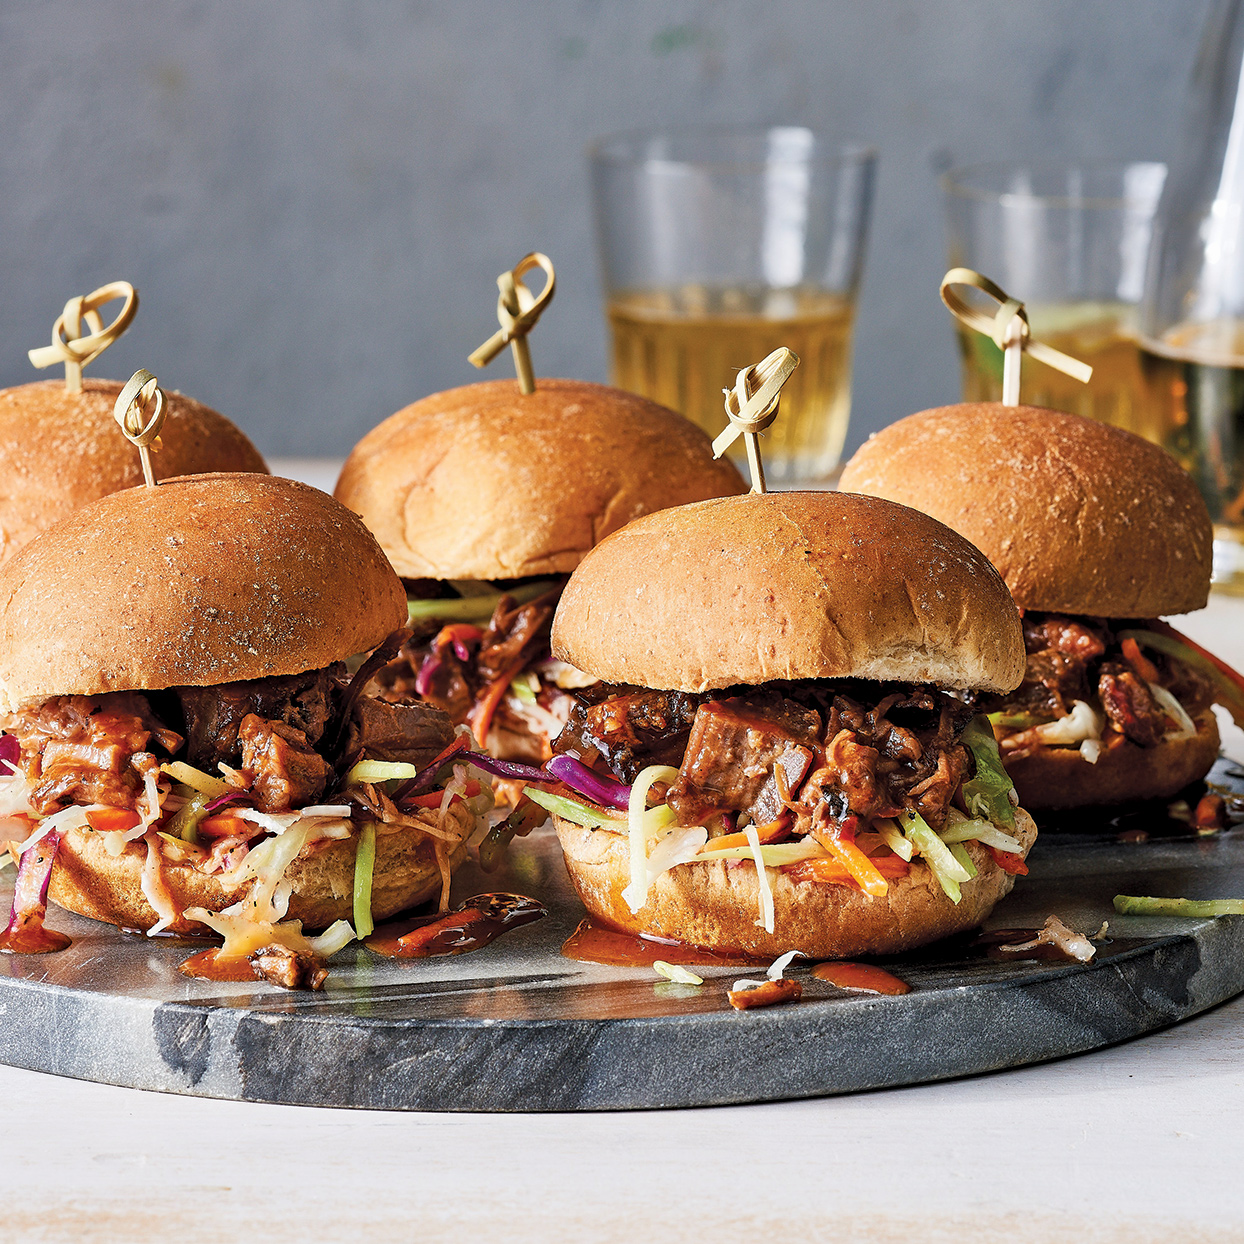 Serve these slow-cooker brisket sliders when company's coming--perhaps to watch the big game--for an easy, crowd-pleasing dish. The crisp, tangy coleslaw is the perfect pairing for the tender, rich brisket. Serve with chips, crudités and cold beer to round out the meal. Source: Everyday Slow Cooker